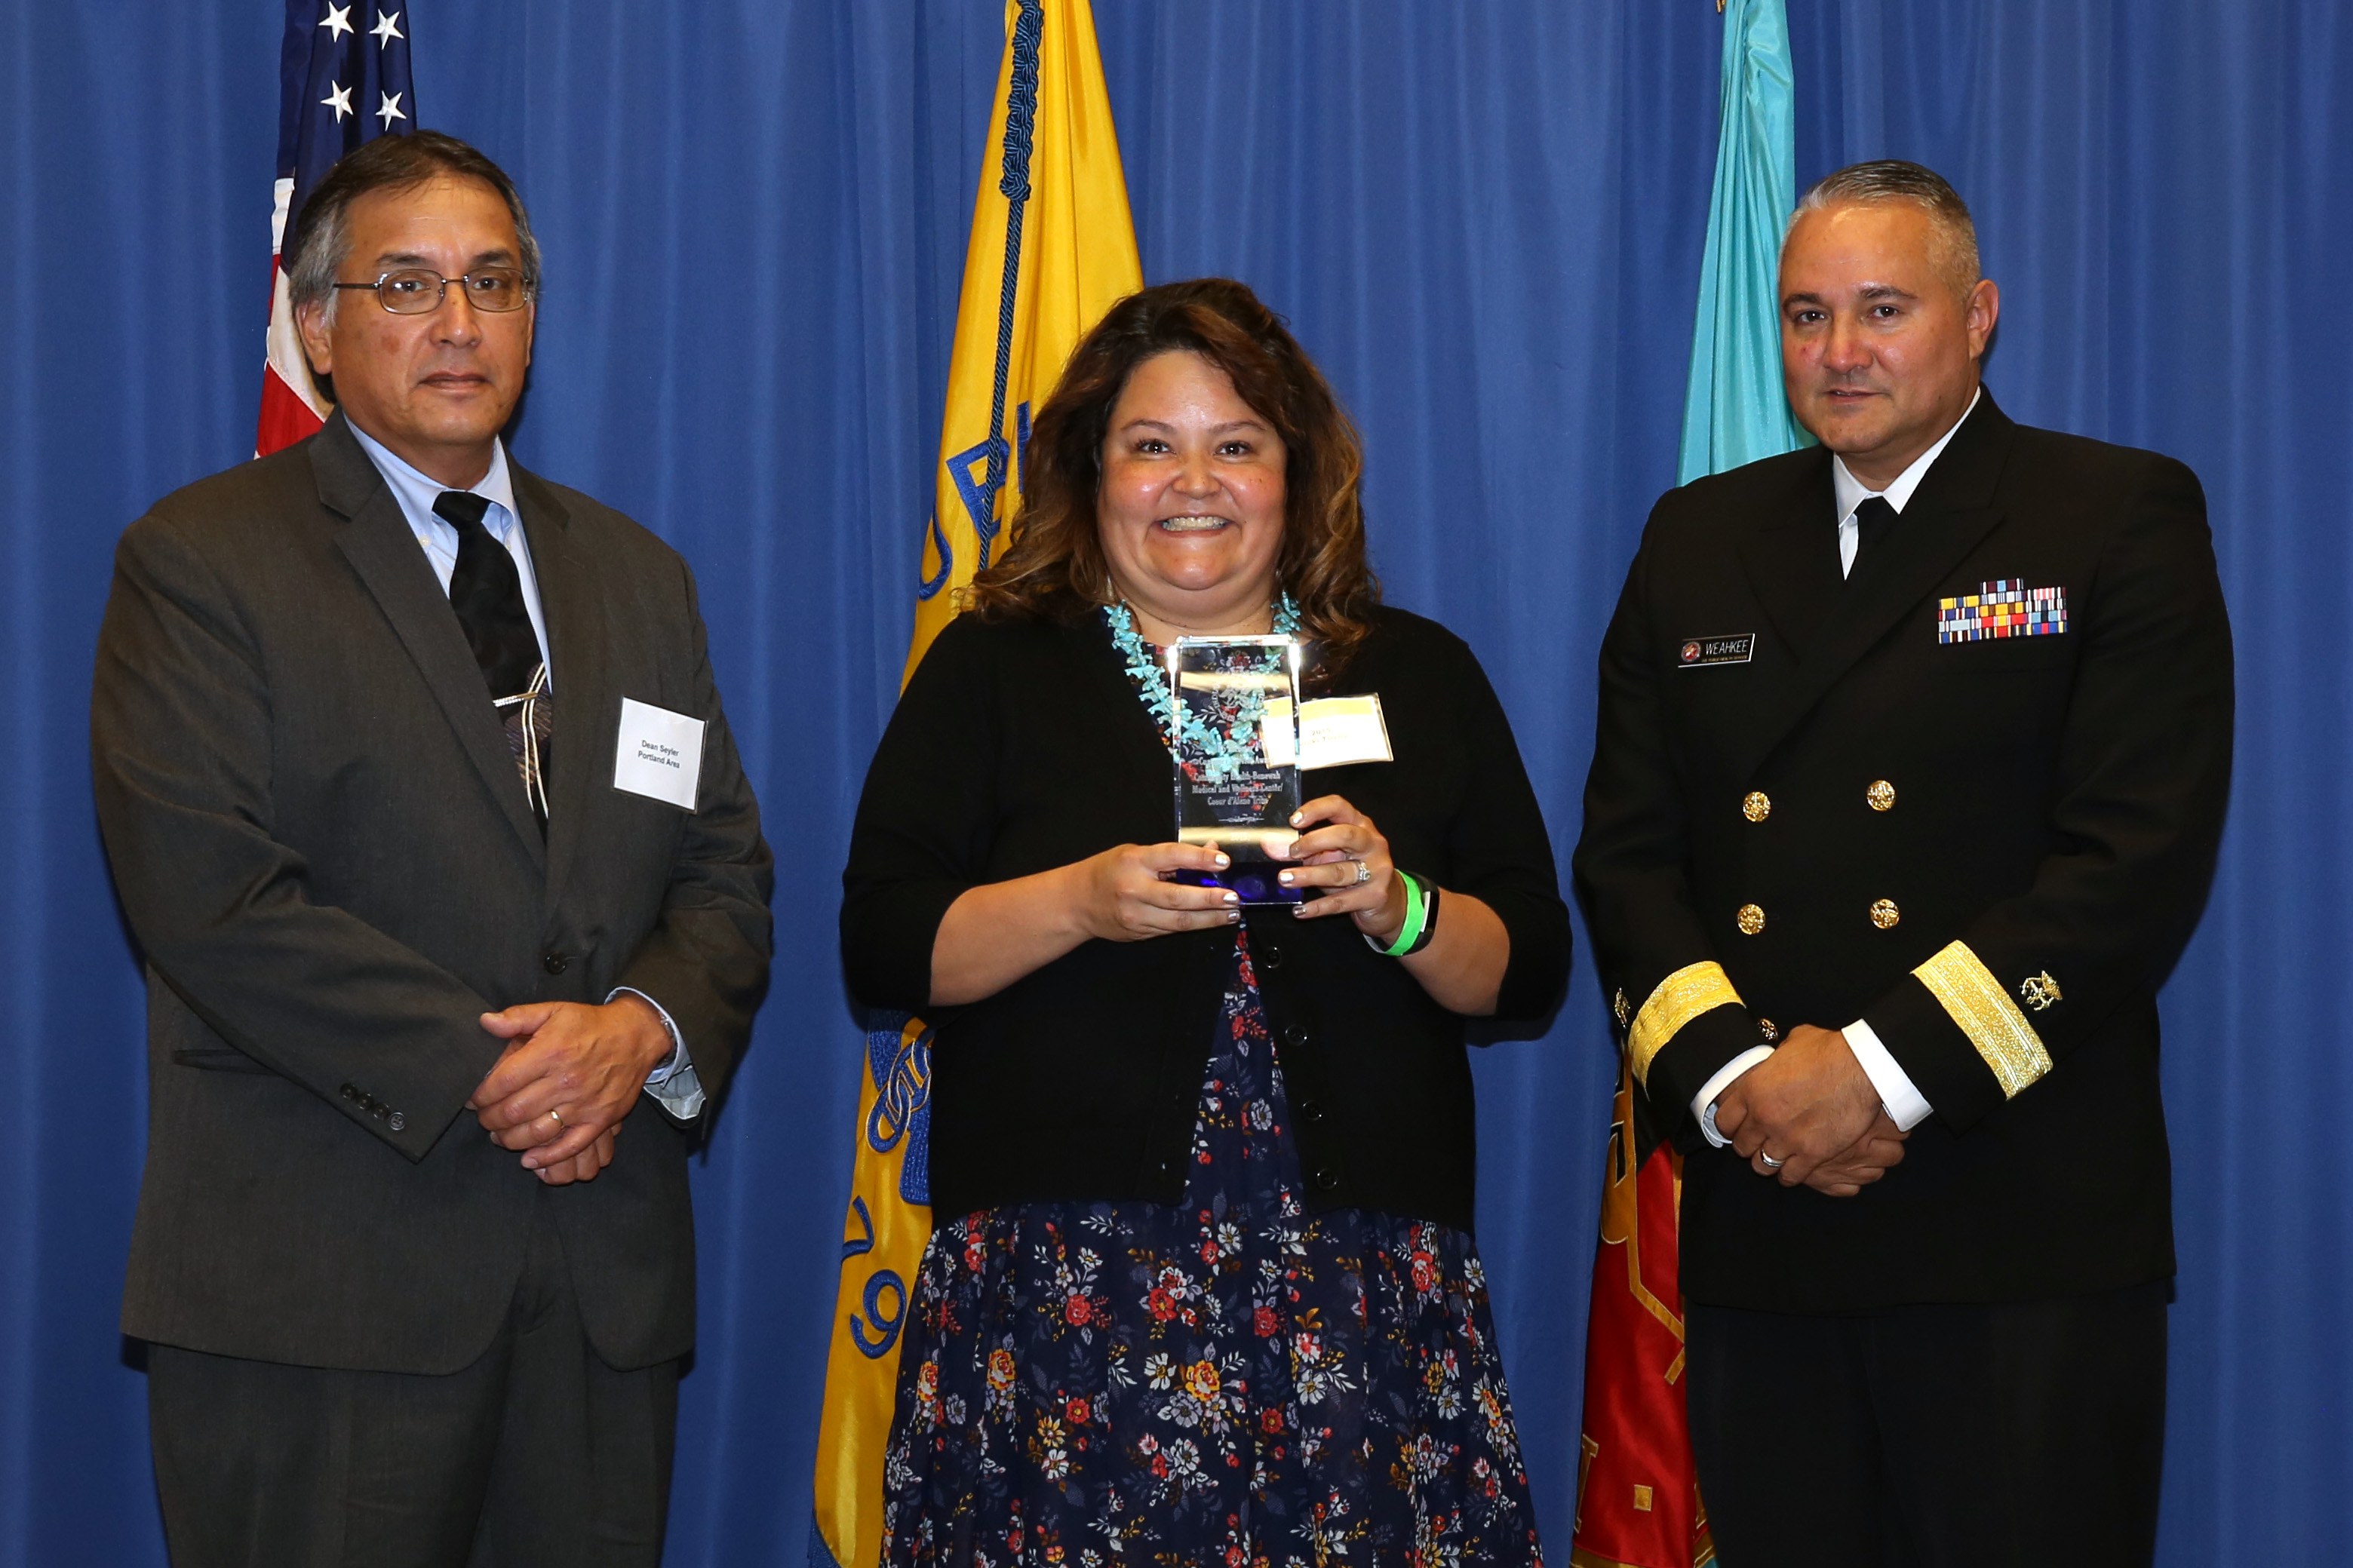 2015 Director's Customer Service Award - Team - Vicki Tovey on behalf of Community Health - Benewah Medical and Wellness Center, Coeur d'Alene Tribe (Portland)